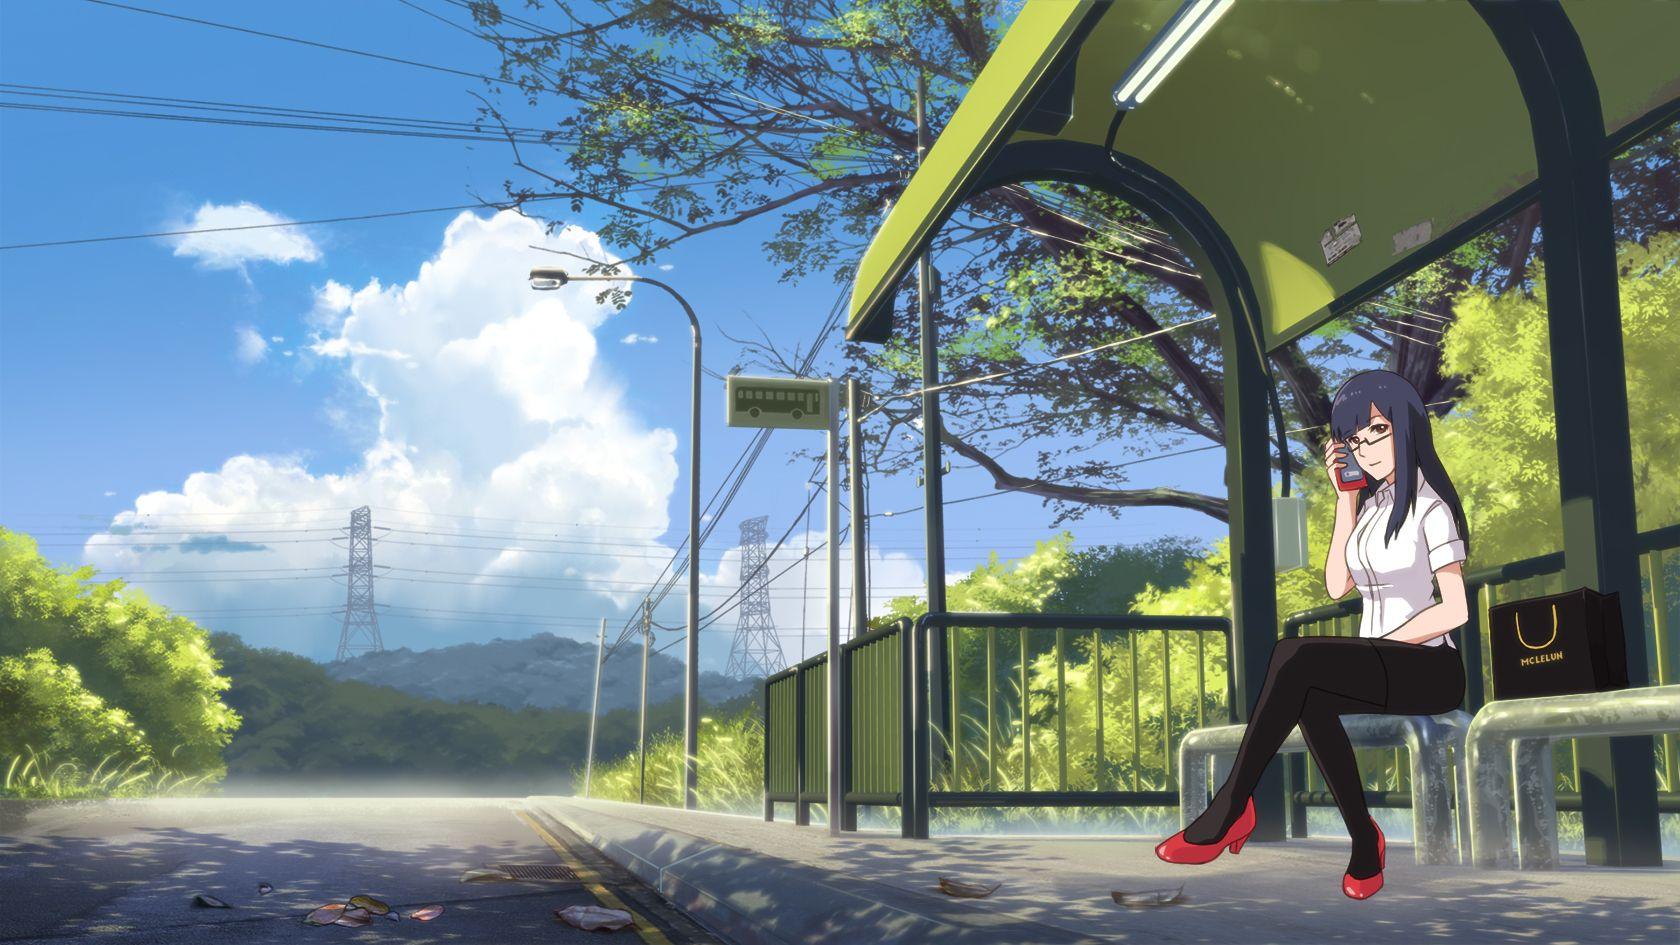 Painting Anime Bus Stop Scene With Images Anime Background